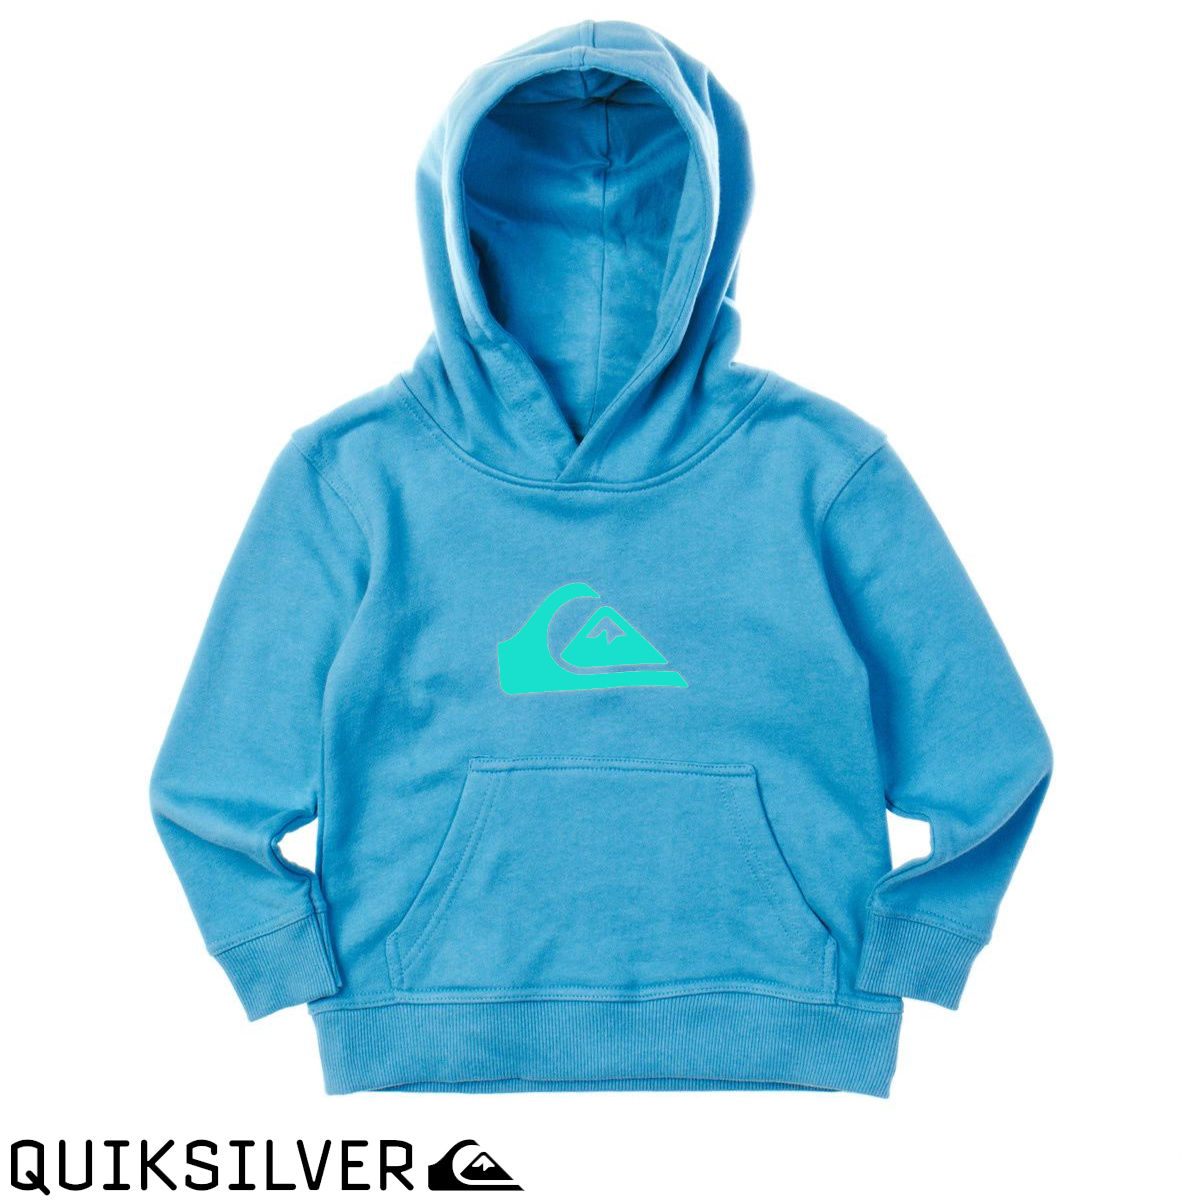 6951496d04 'Quiksilver Kids / Childrens Mountain and Waves PO Hoodie Blue Jay surf  youth'